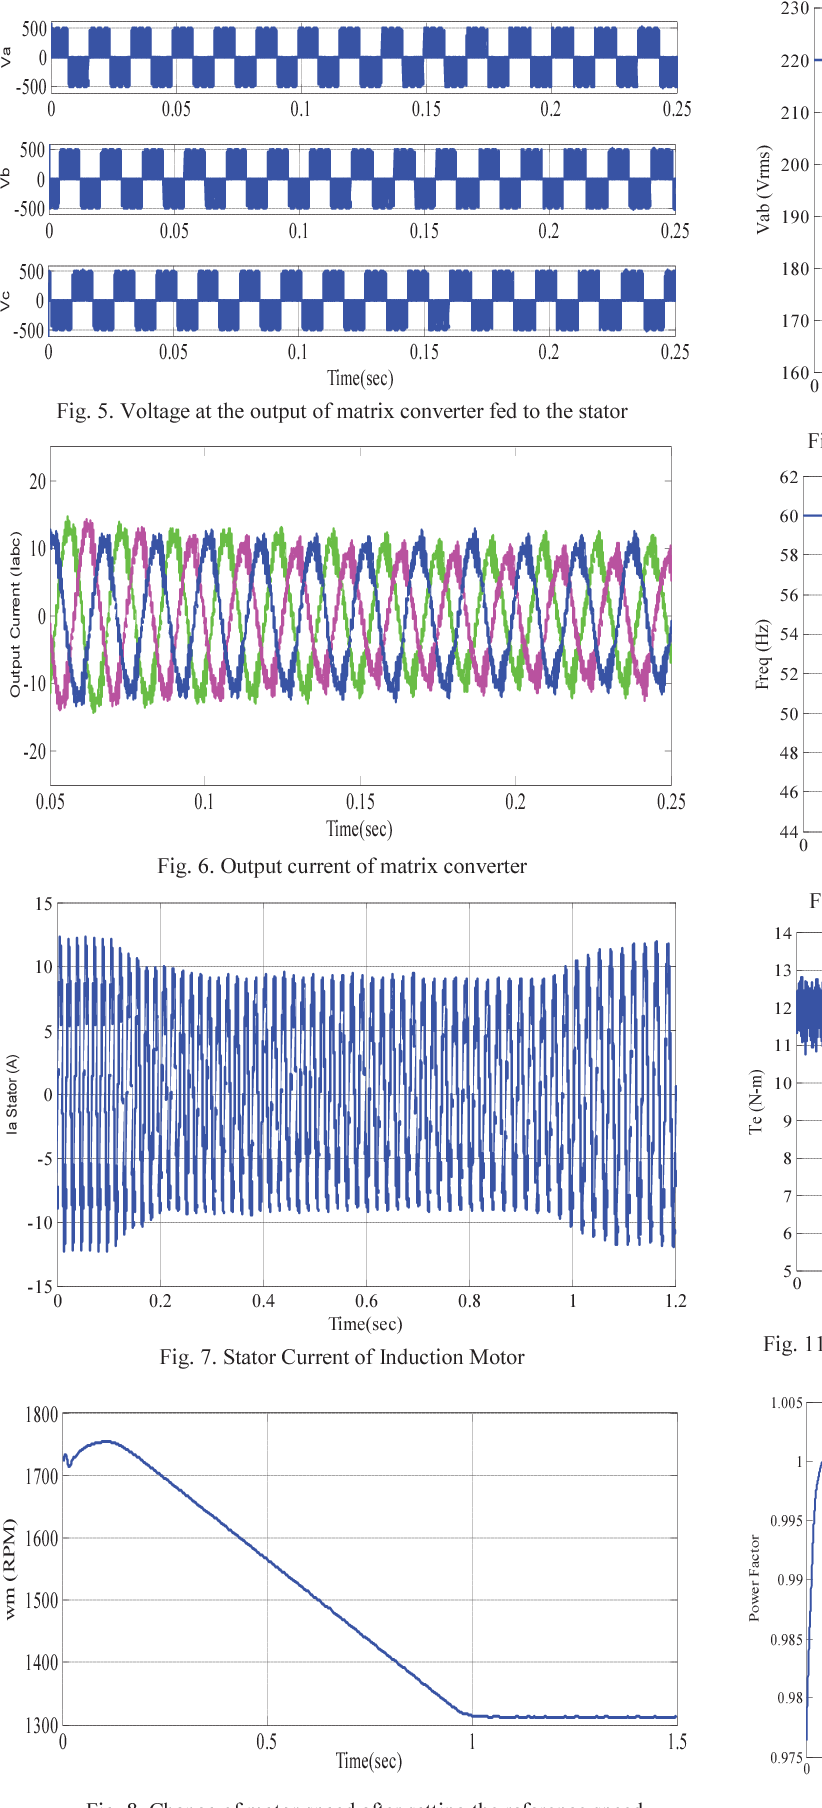 Speed Control Of 3 Phase Induction Motor Fed Through Direct Matrix Stator Voltage Three By Converter Using Gspwm Technique With Unity Input Power Factor Semantic Scholar